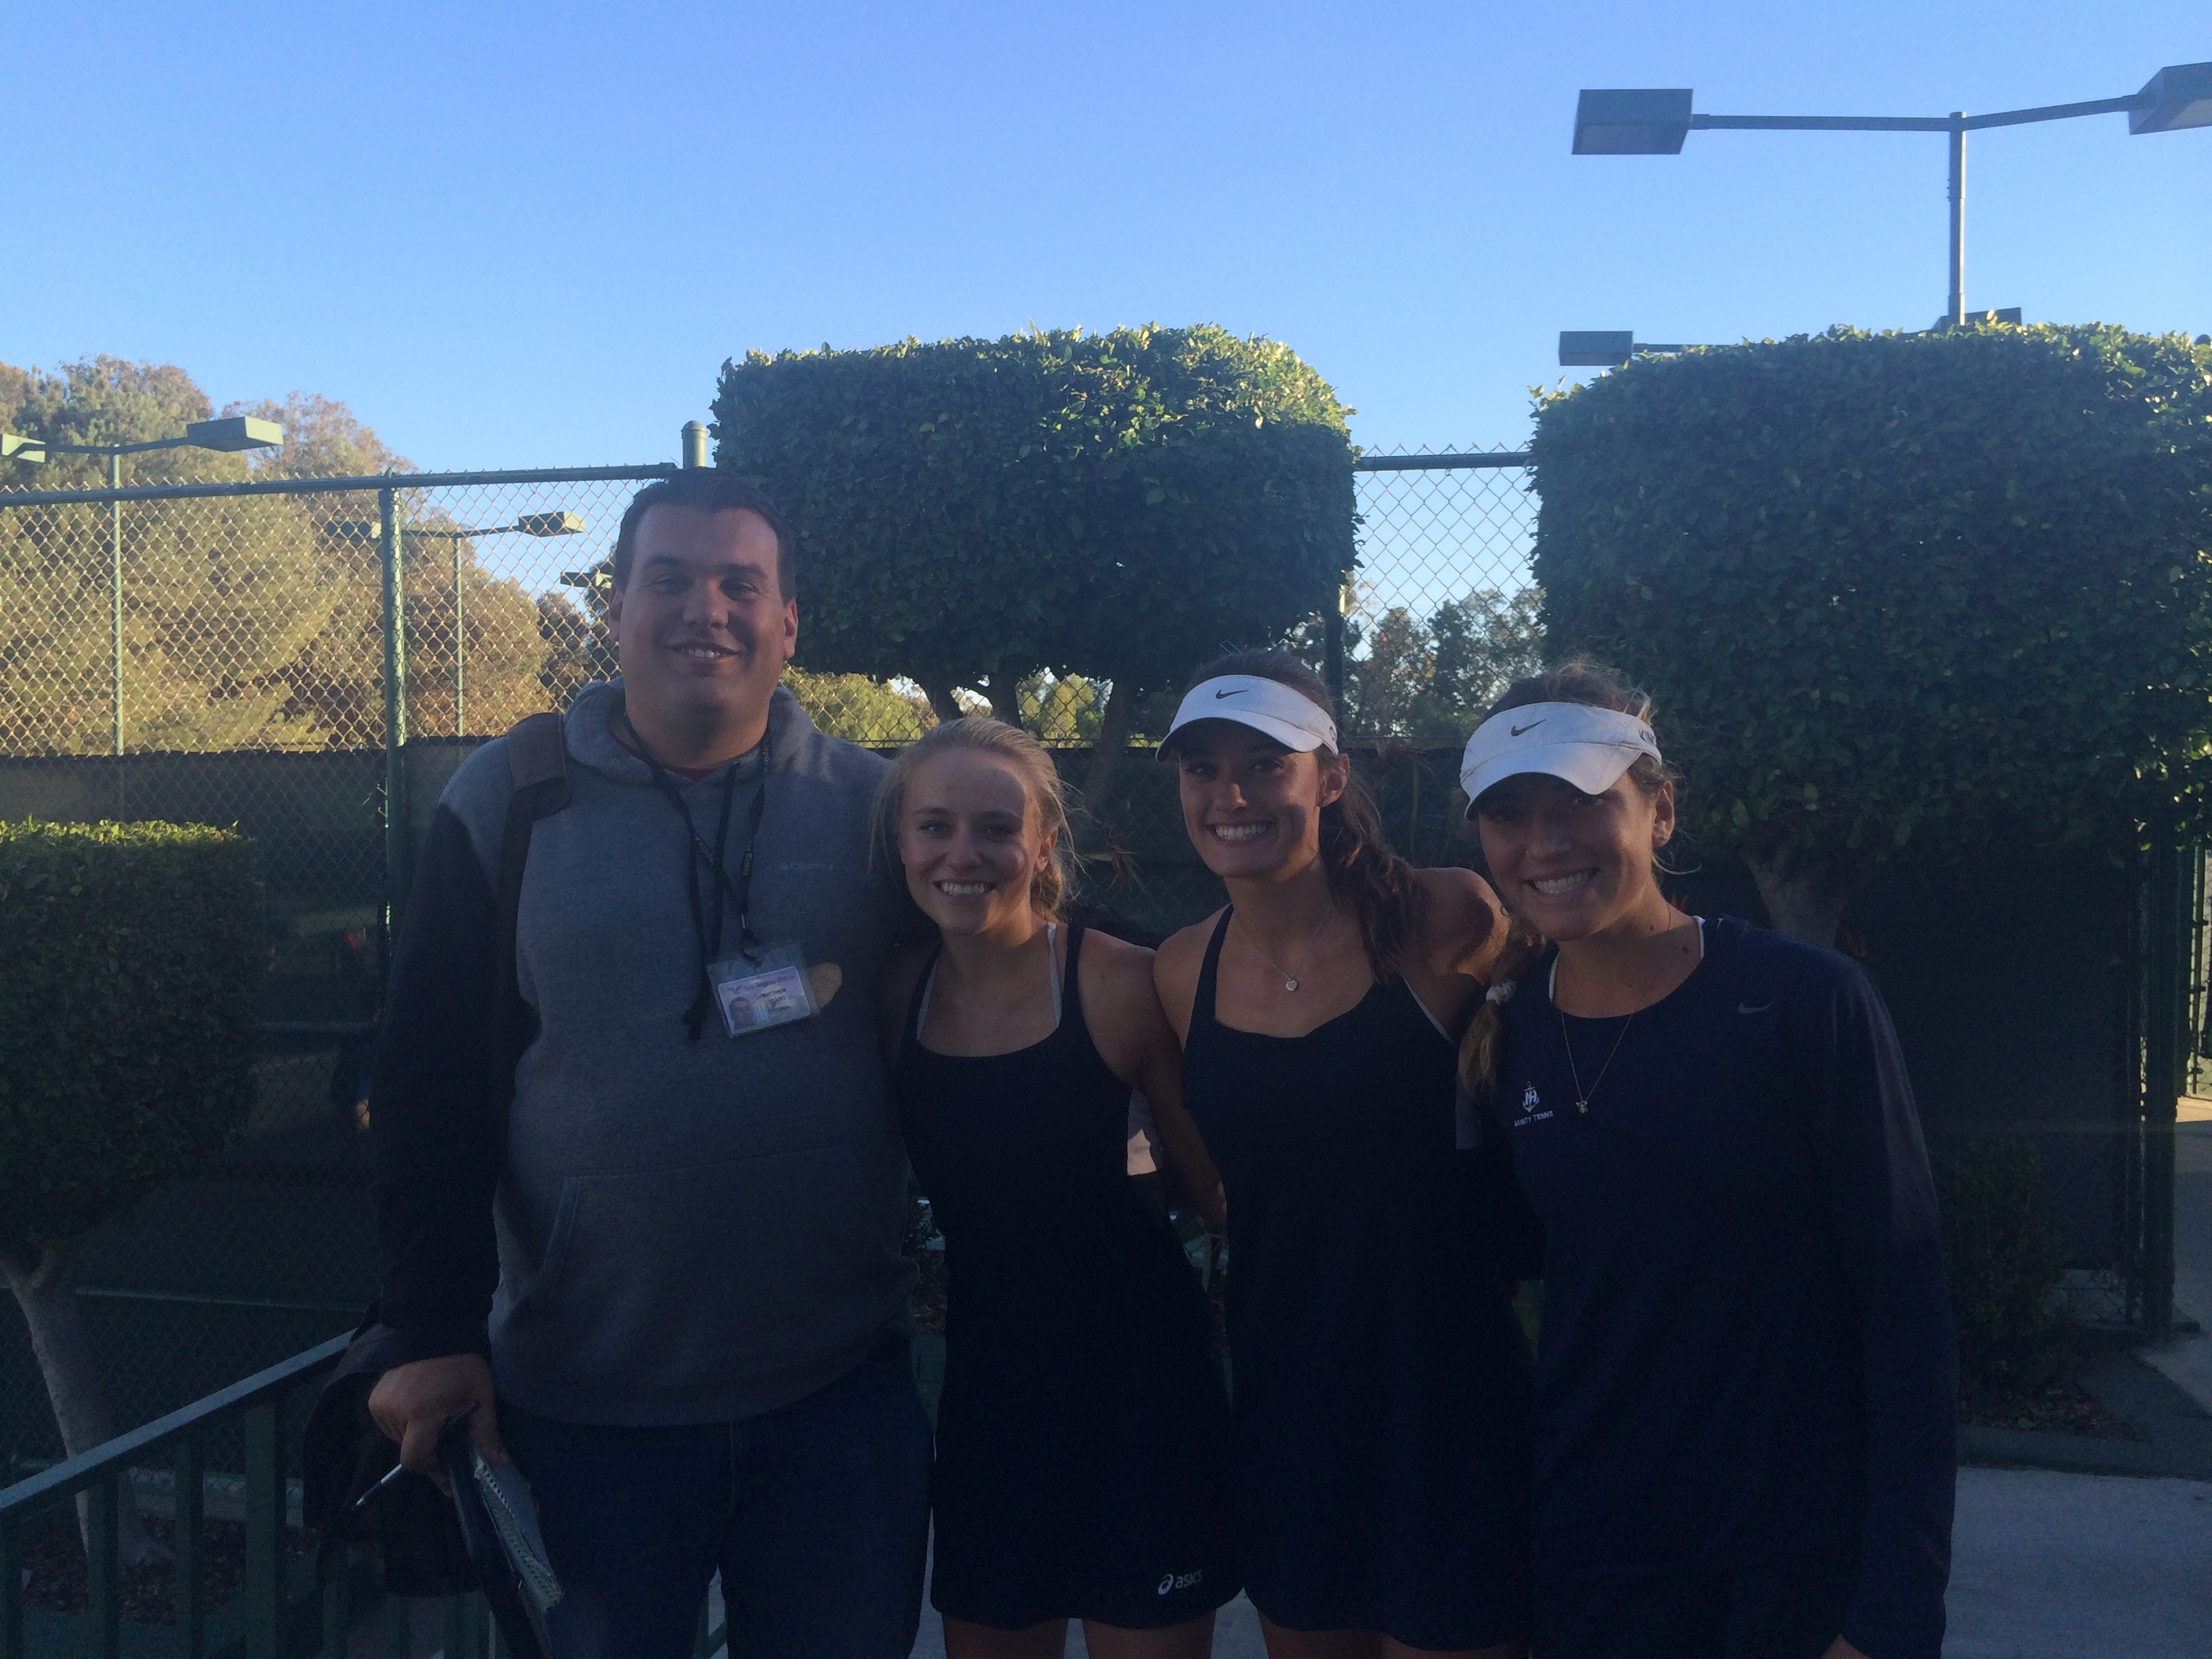 Congrats to our CIF Individuals Competitors: Anna Burke, Kendall Cosenza and  Jenn Kinglsey